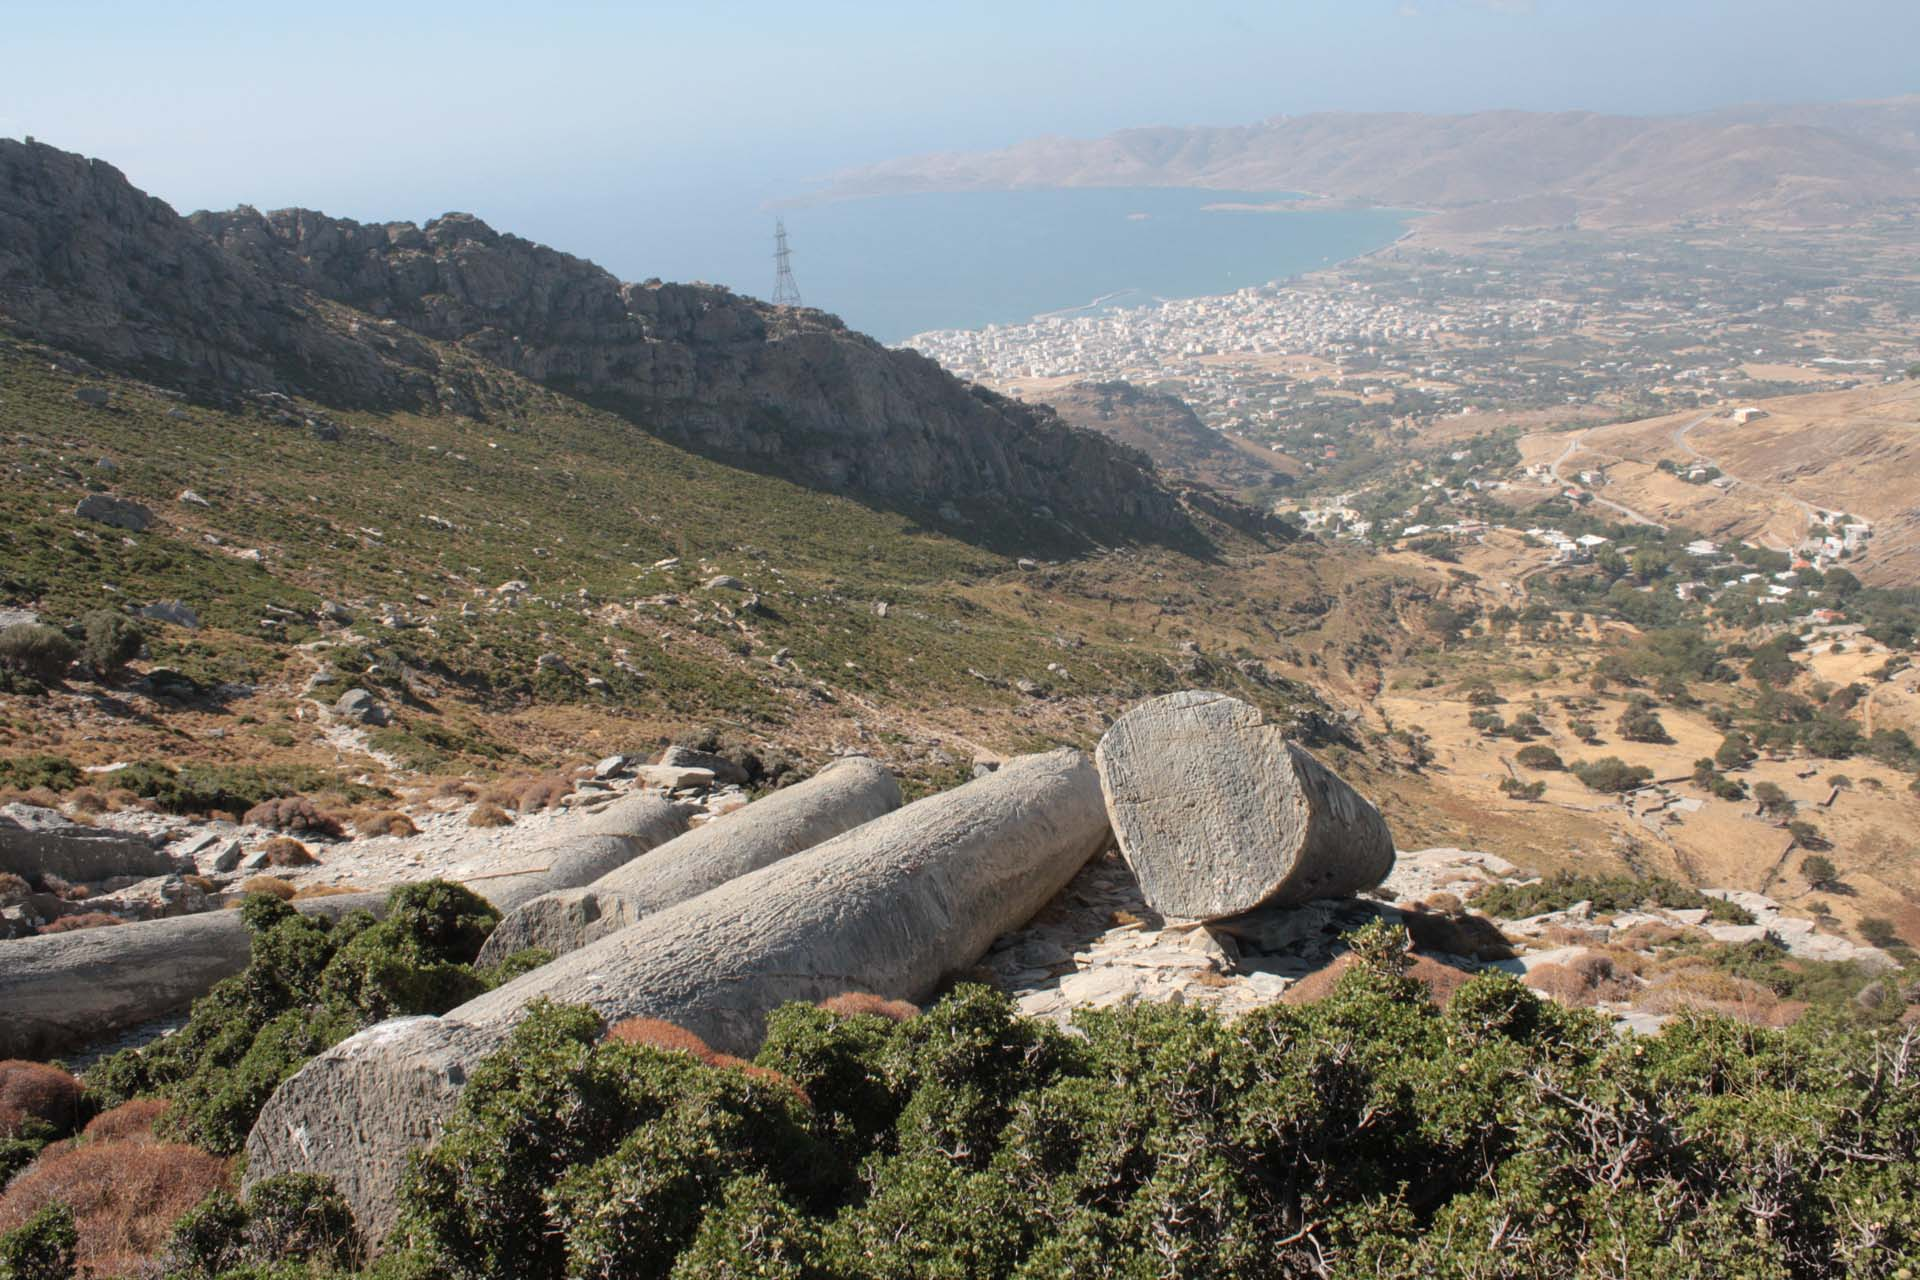 View on the Karystos bay in the Euboea island from the quarry columns on the slope